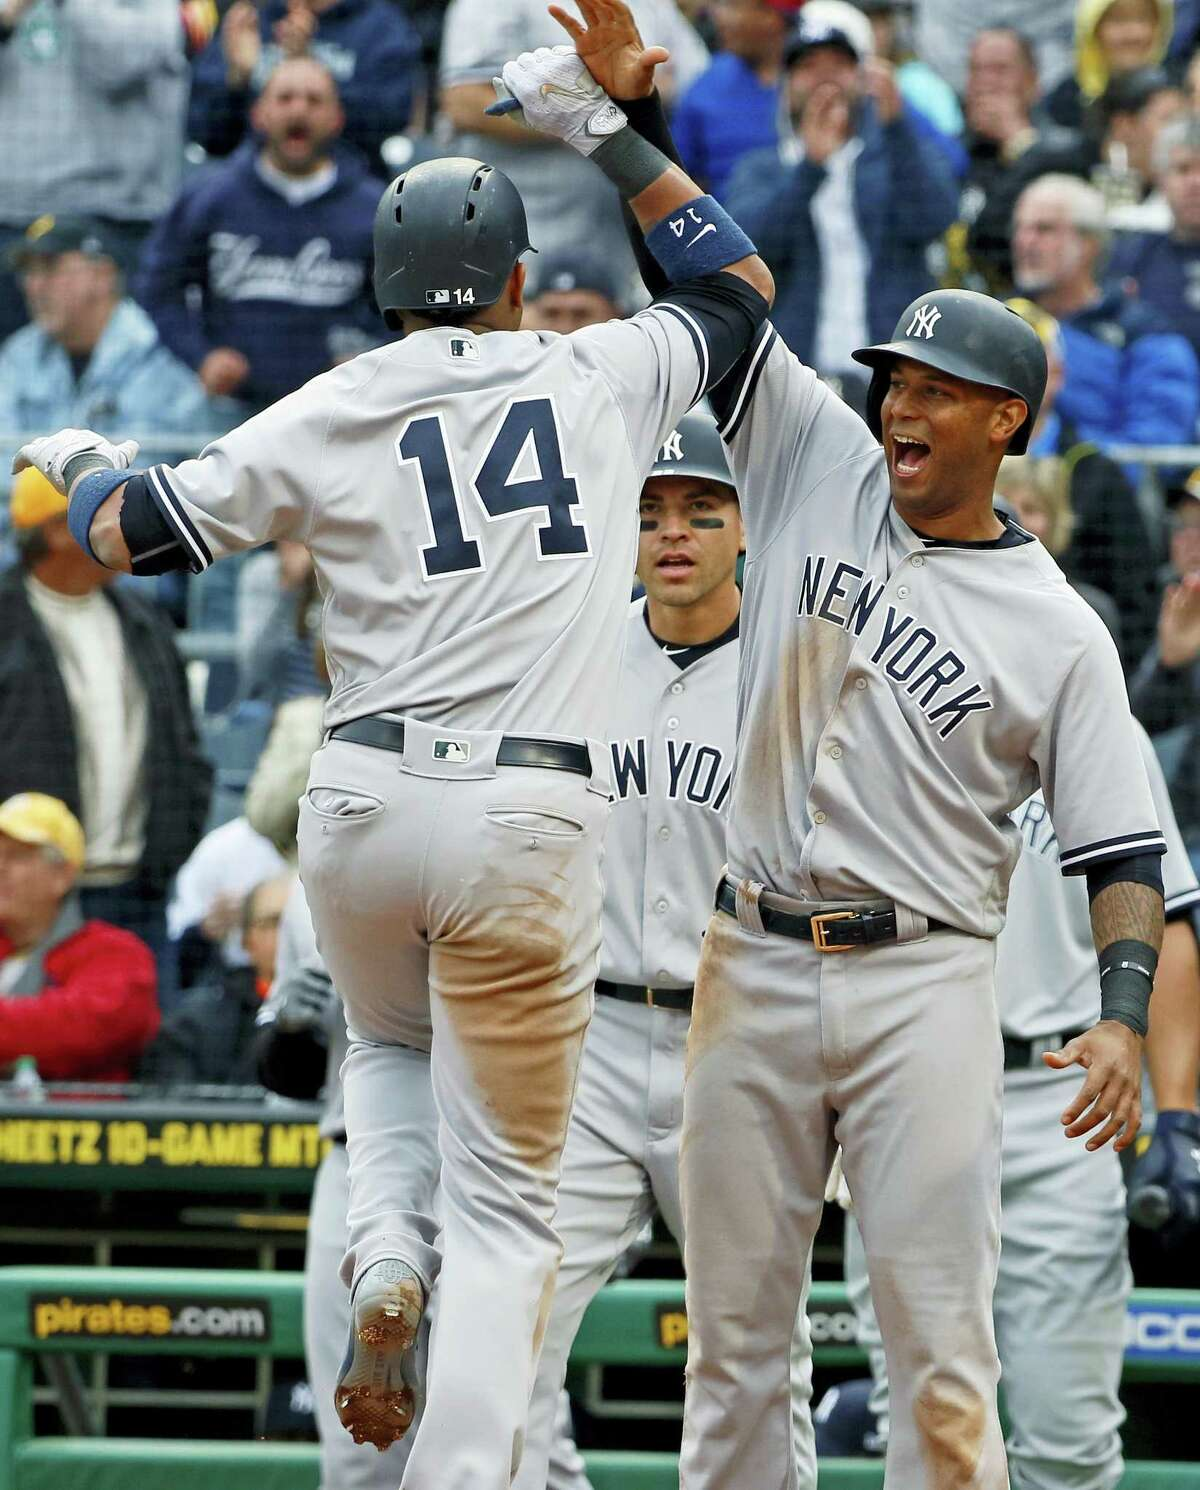 The Yankees' Starlin Castro (14) celebrates with Aaron Hicks, right, and Jacoby Ellsbury after Castro's home run in the sixth inning.